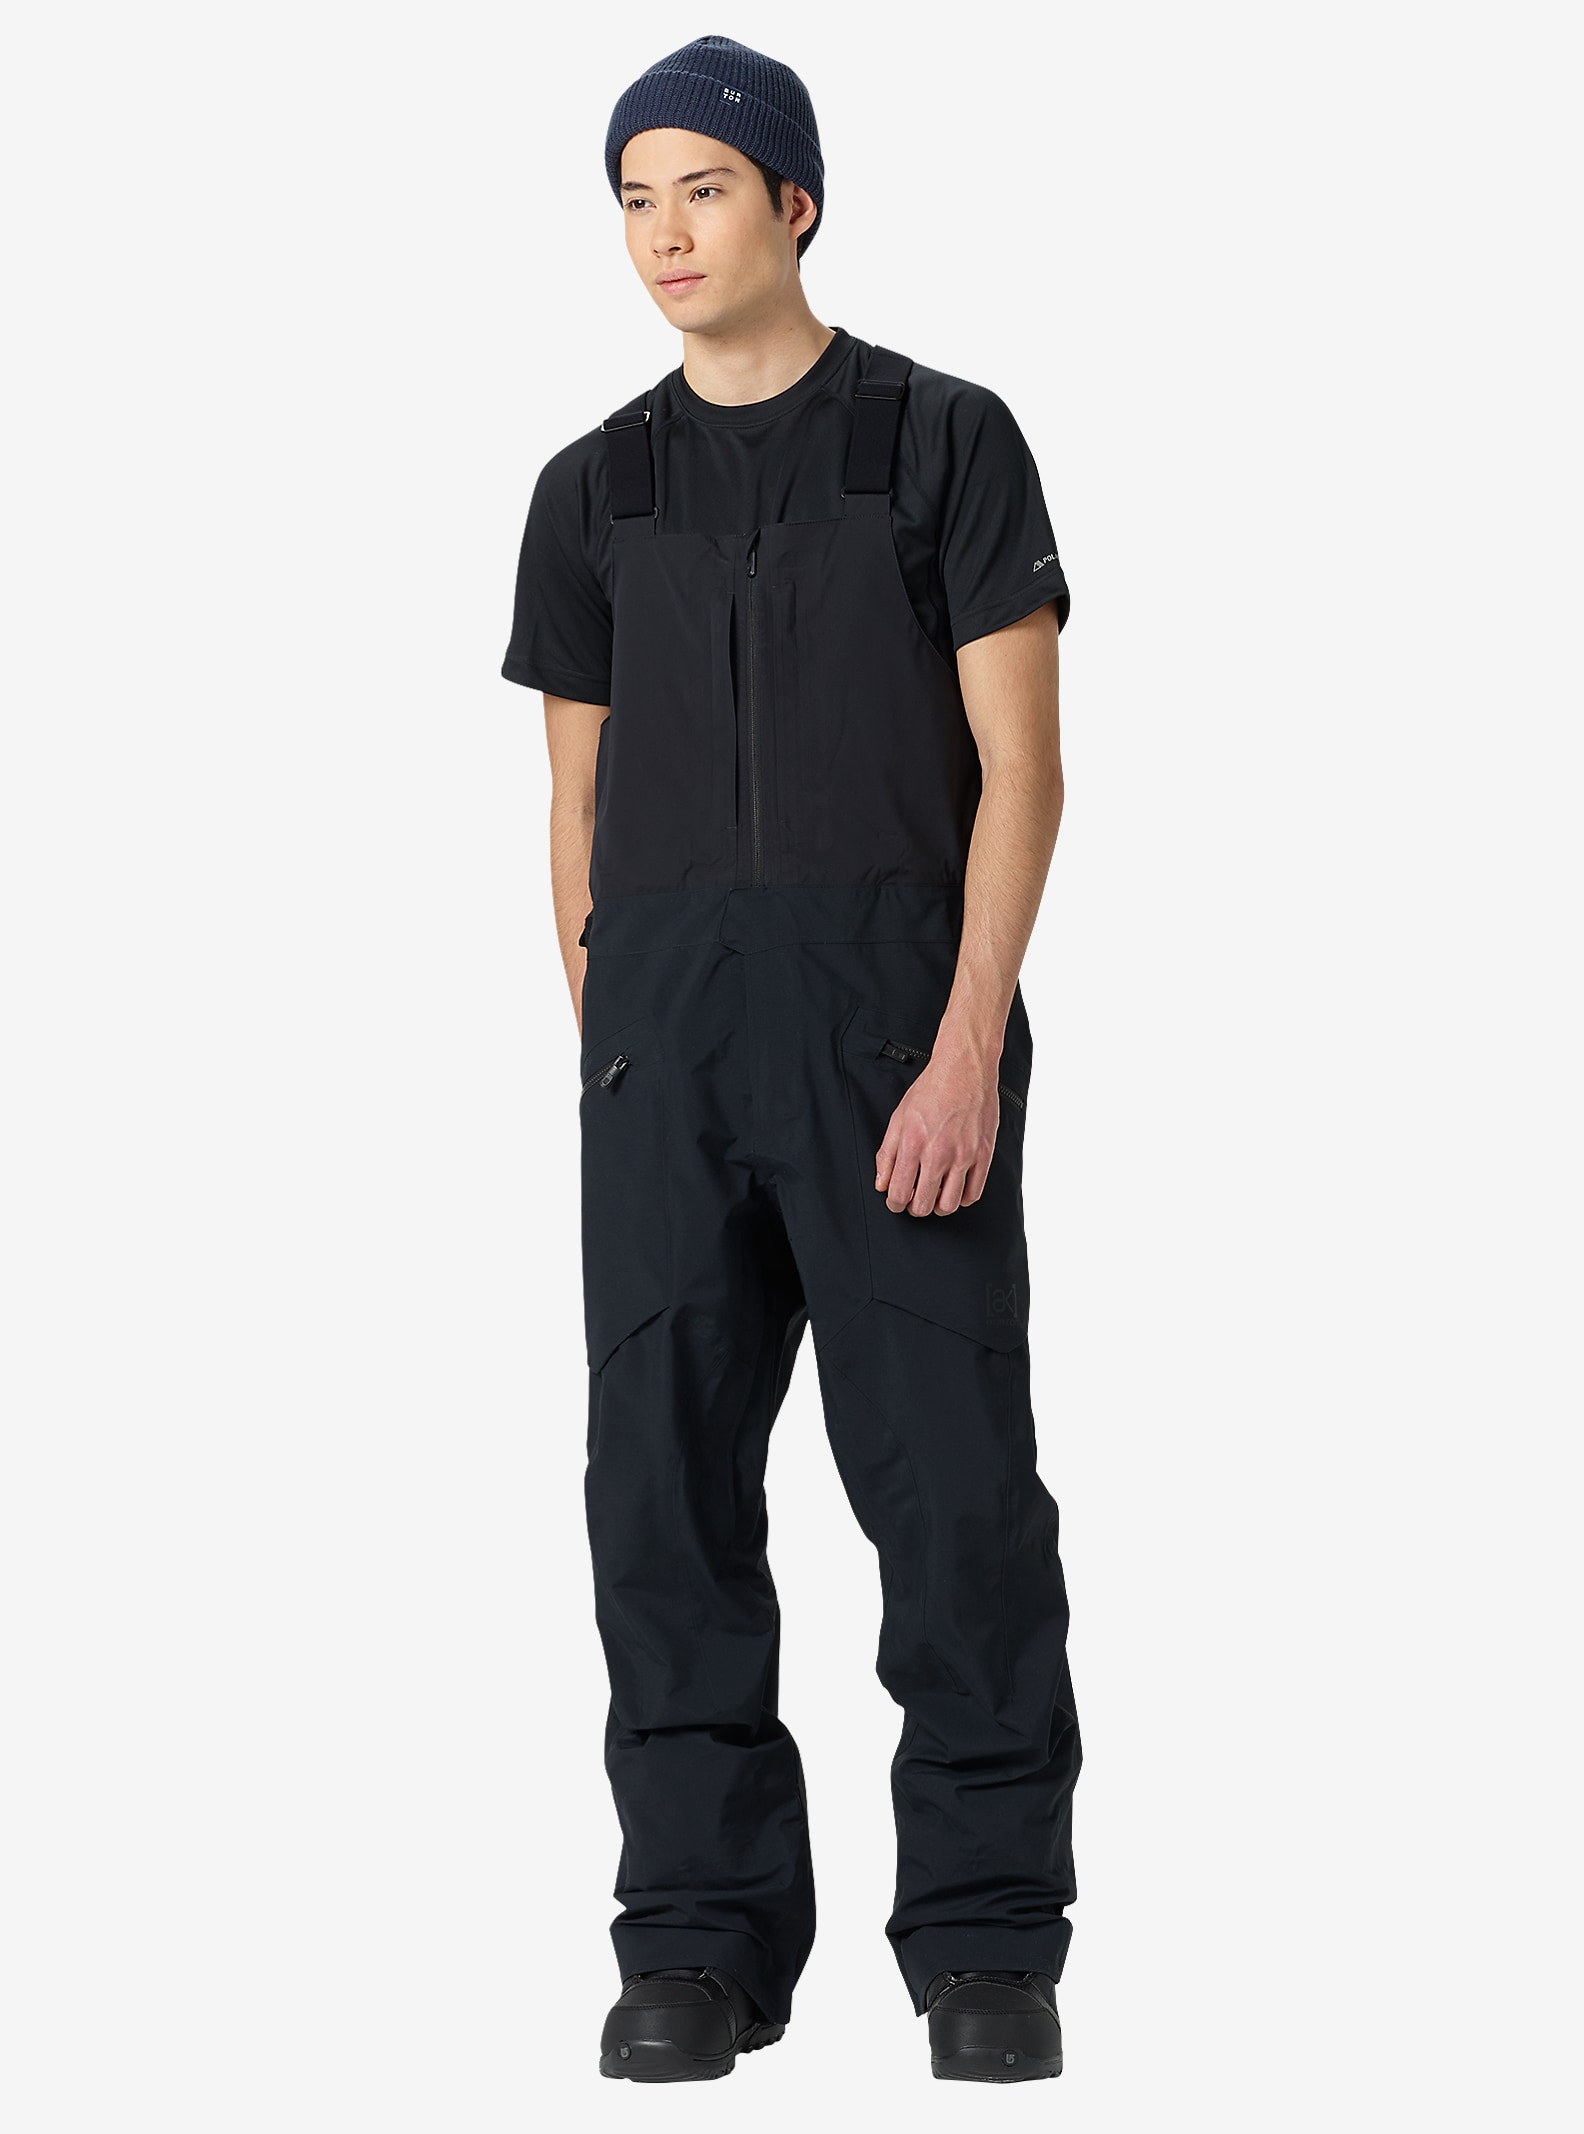 Burton [ak] 3L Freebird Bib Pant shown in True Black